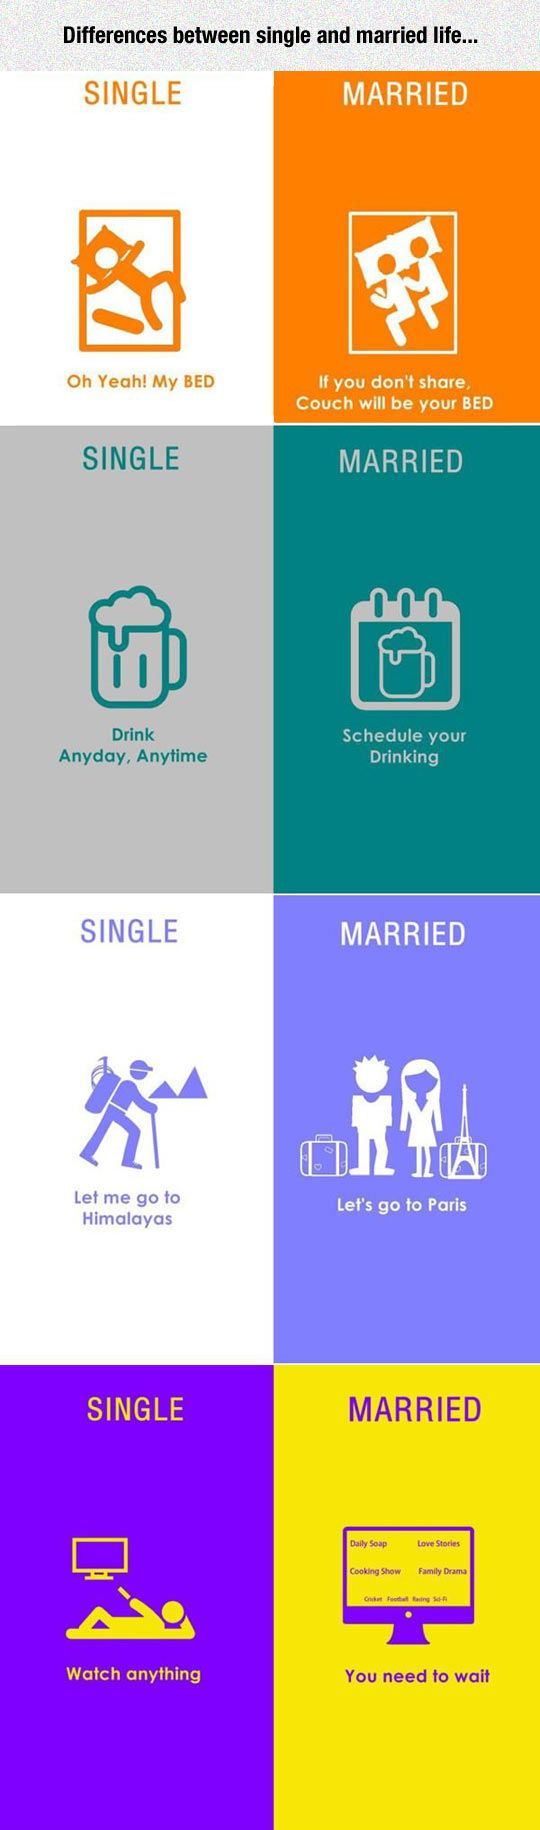 preference of married life and single life sociology essay There are two major differences between married life and single life which are the difference in their freedom and responsibilities 23-3-2015 preference of married life and single life sociology essay single life and married life- fictionserikiller metaphors (comparison and contrast essay ) - second draft.